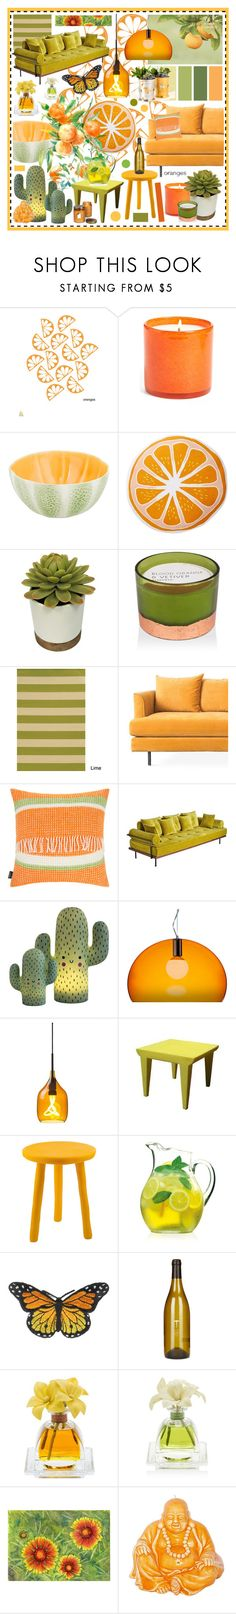 """""""Citrus"""" by beanpod ❤ liked on Polyvore featuring interior, interiors, interior design, home, home decor, interior decorating, LAFCO, Bordallo Pinheiro, Nordstrom Rack and Paddywax"""